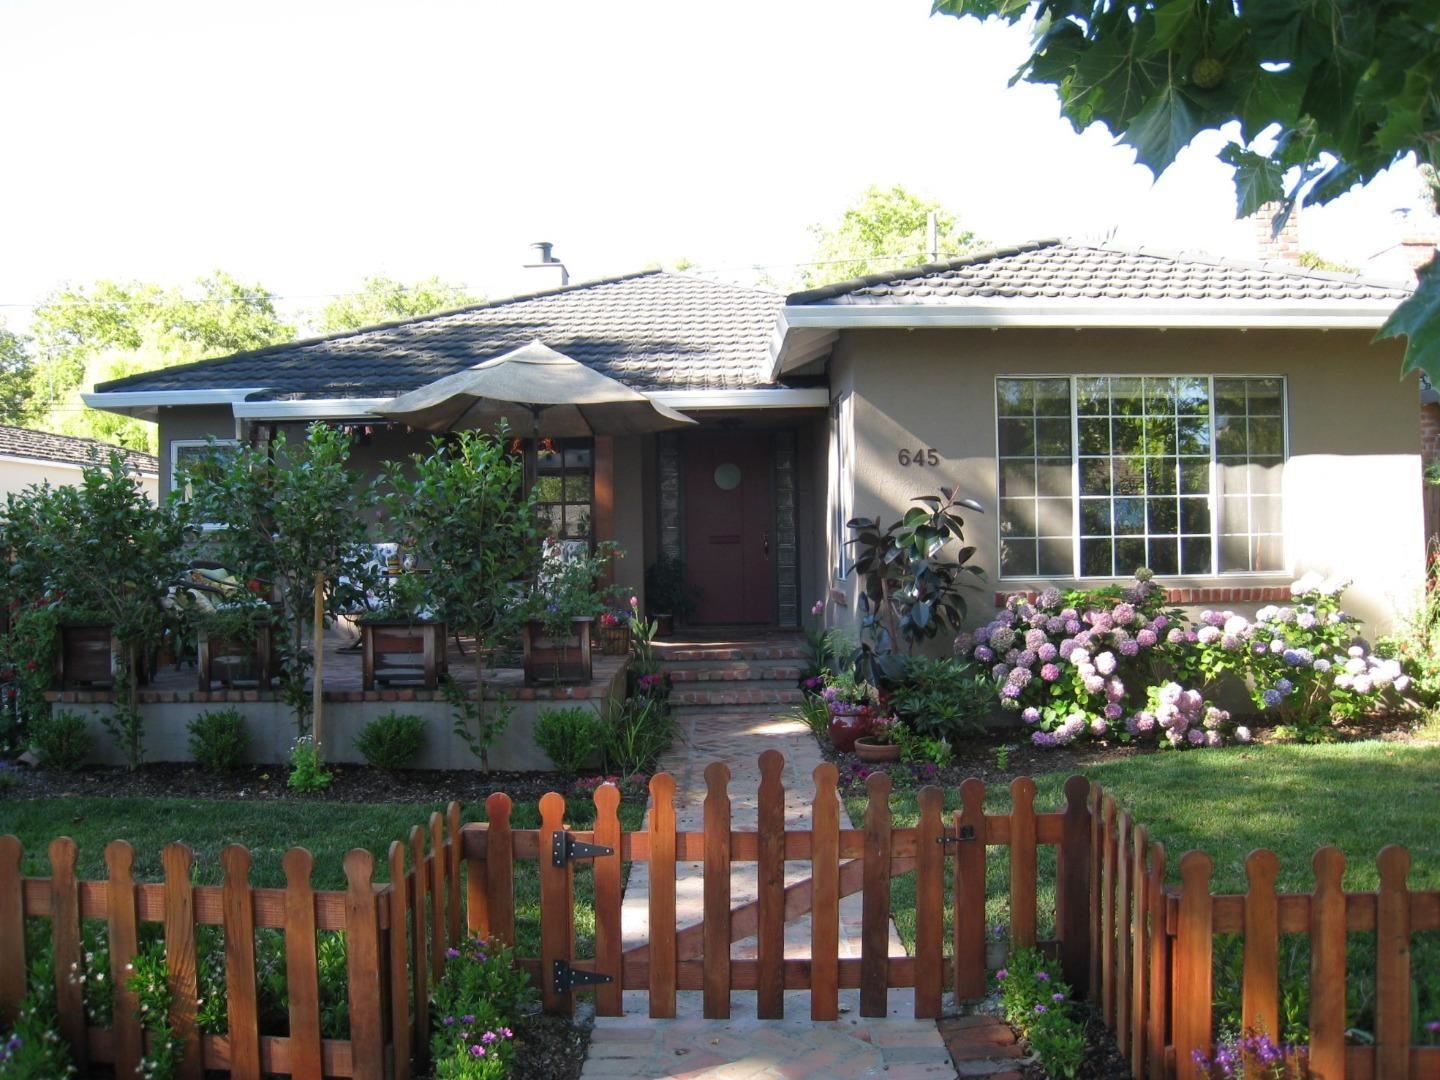 Photo for 645 Sierra AVE, MOUNTAIN VIEW, CA 94041 (MLS # ML81840503)